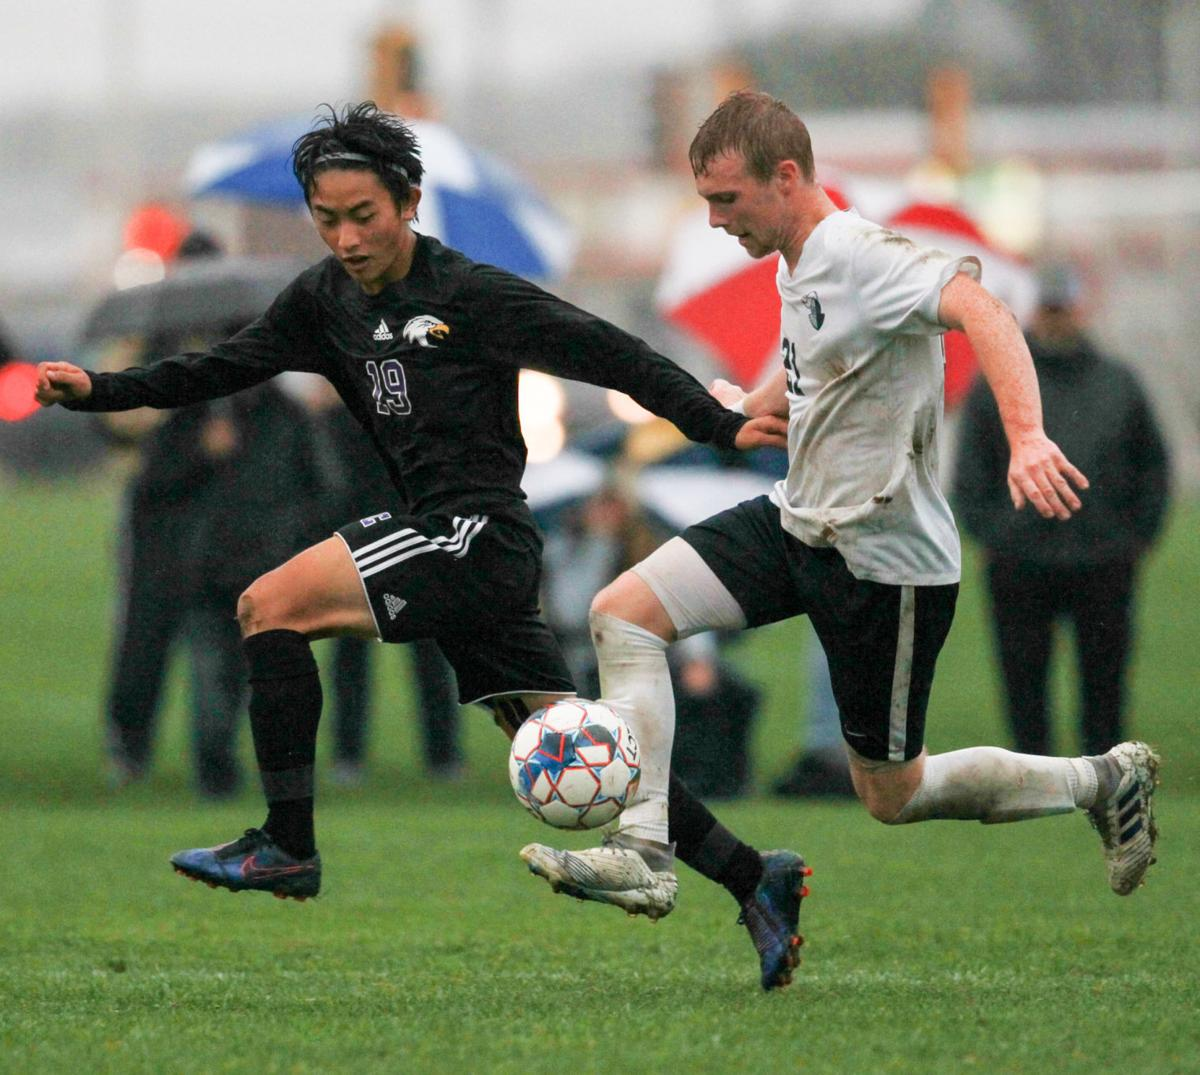 UW-Eau Claire men's soccer could help local scene